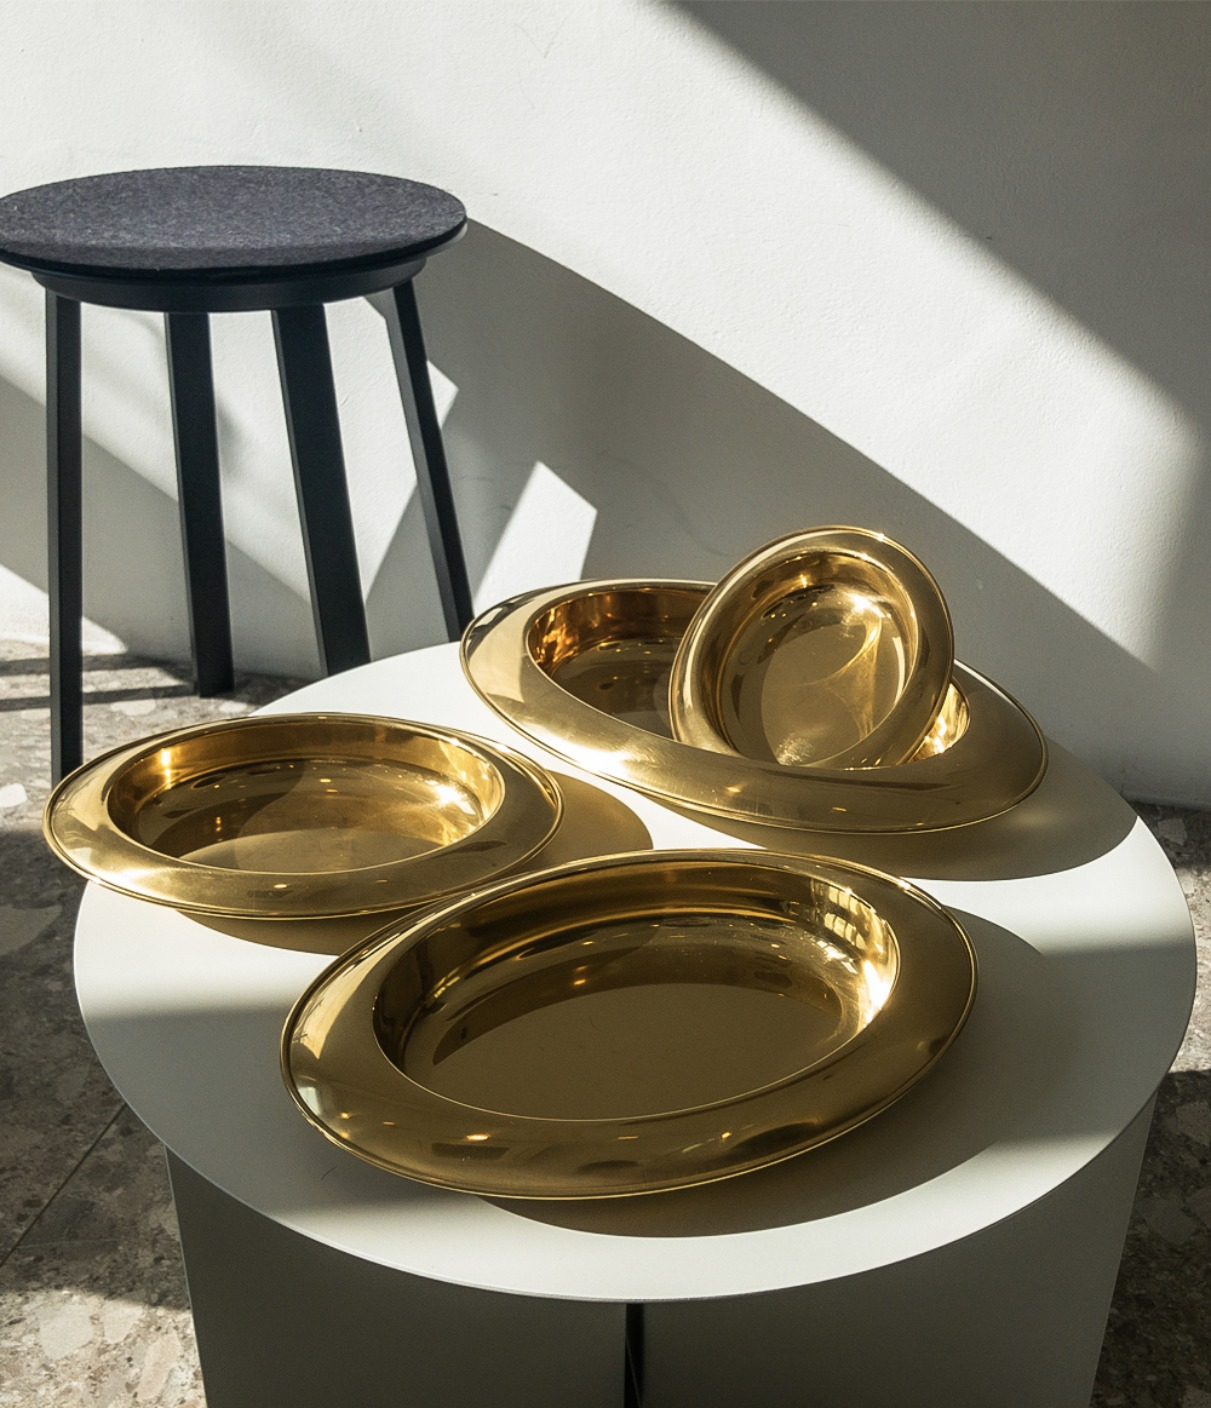 OVAL PLATE (GOLD)